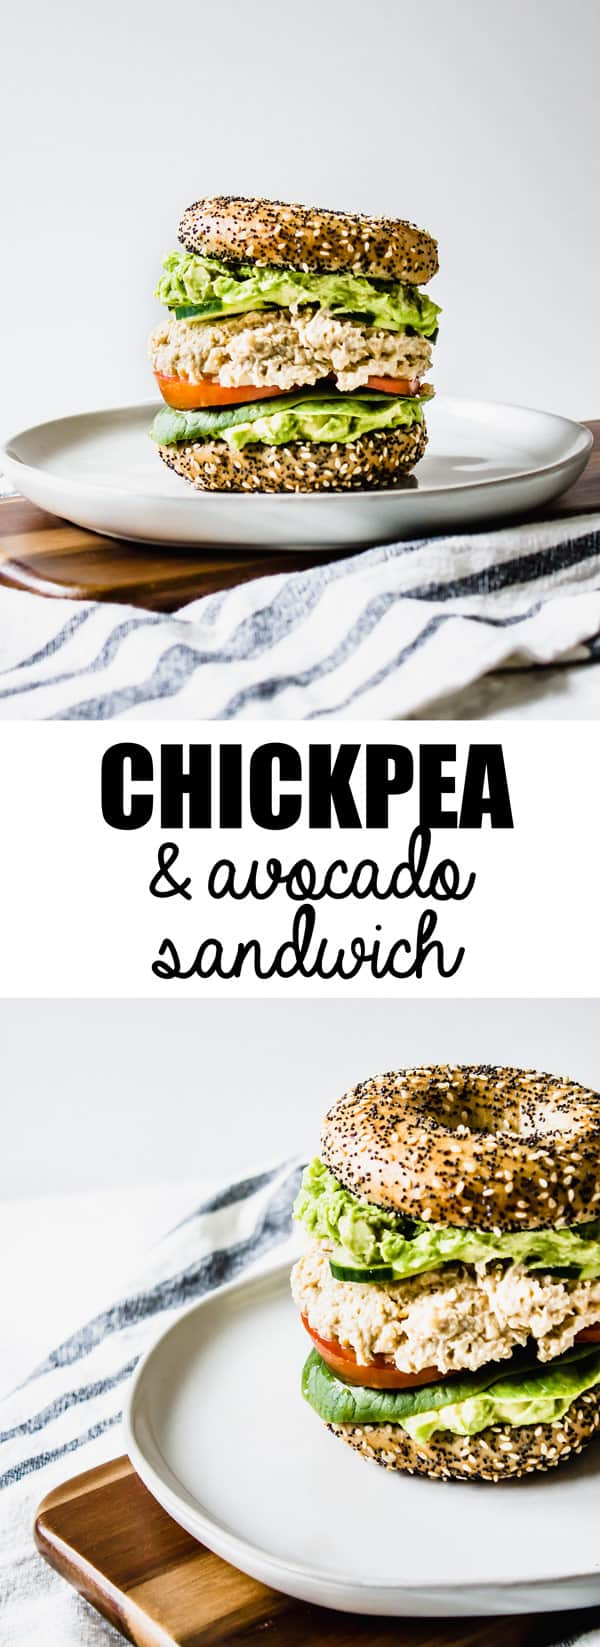 This smashed chickpea and avocado sandwich is a healthy vegan gluten-free sandwich that is so easy to make!